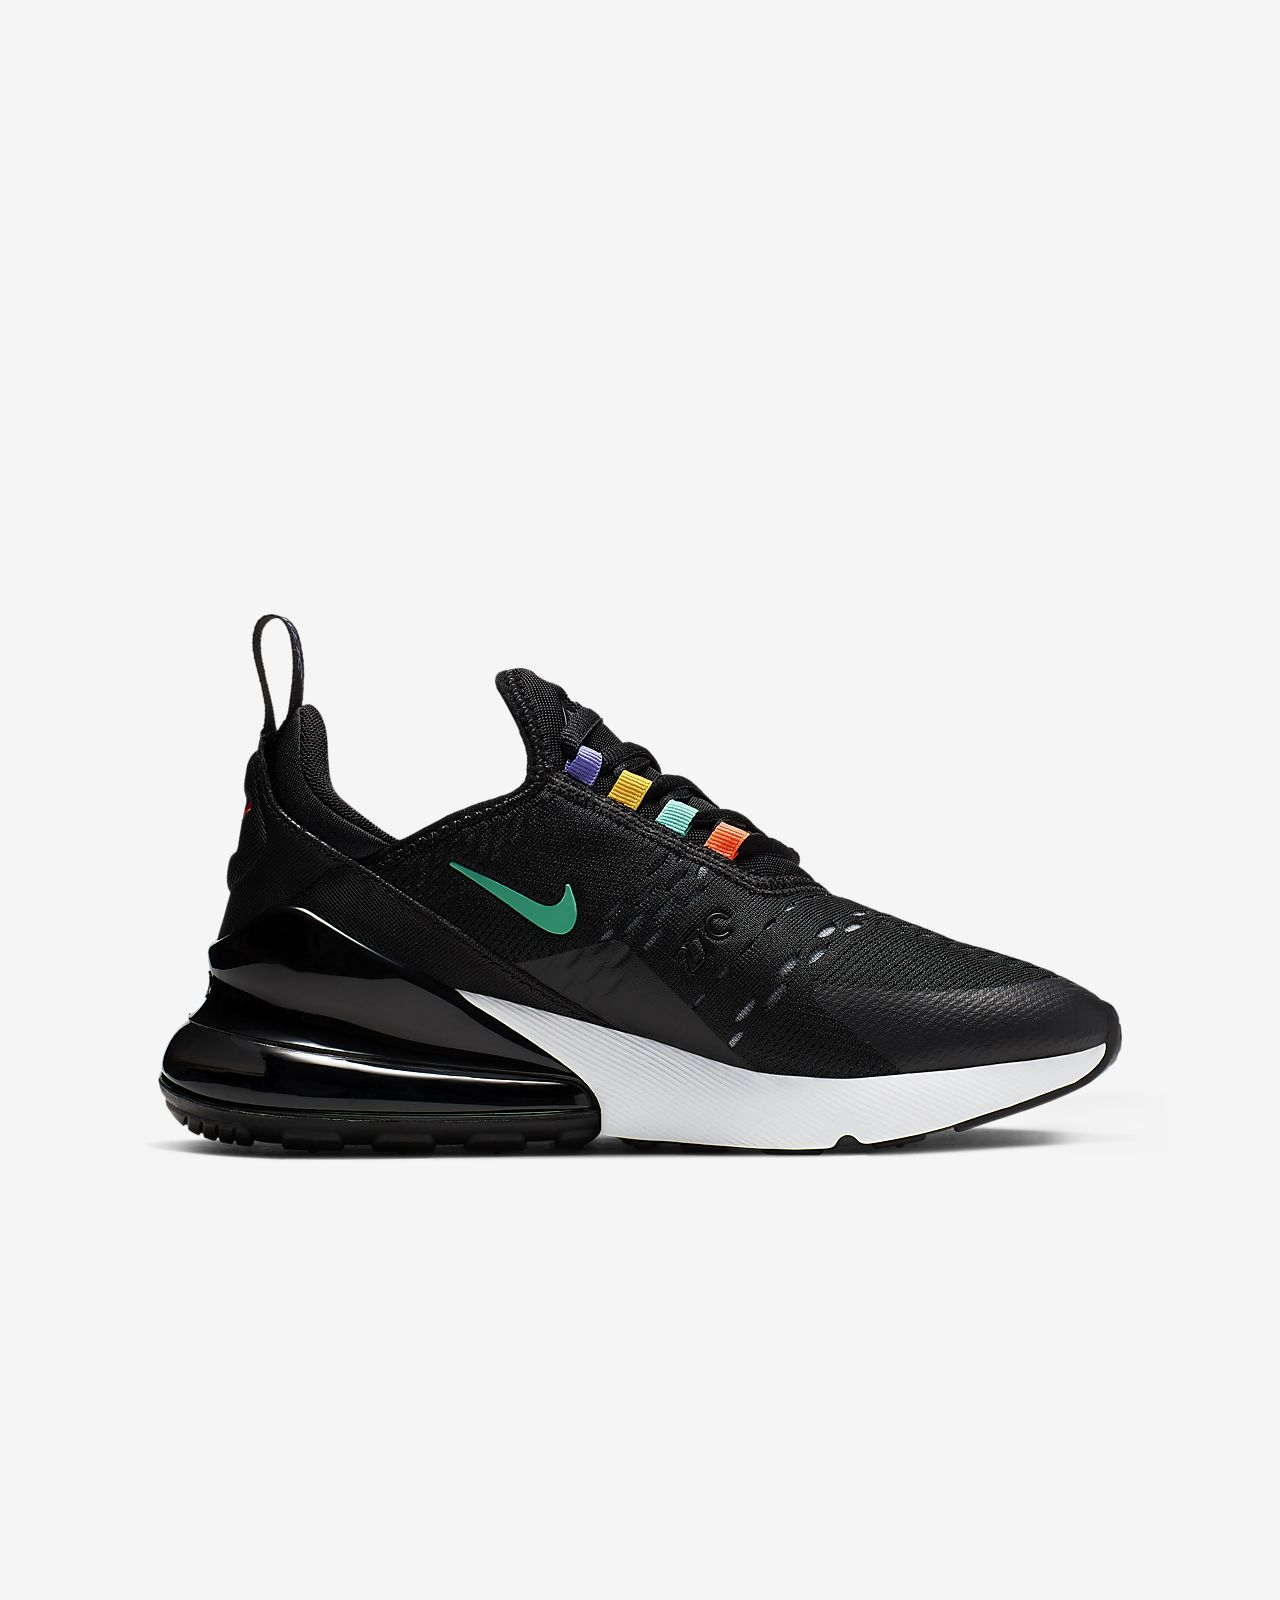 Nike Air Max 270 Youth Size 4